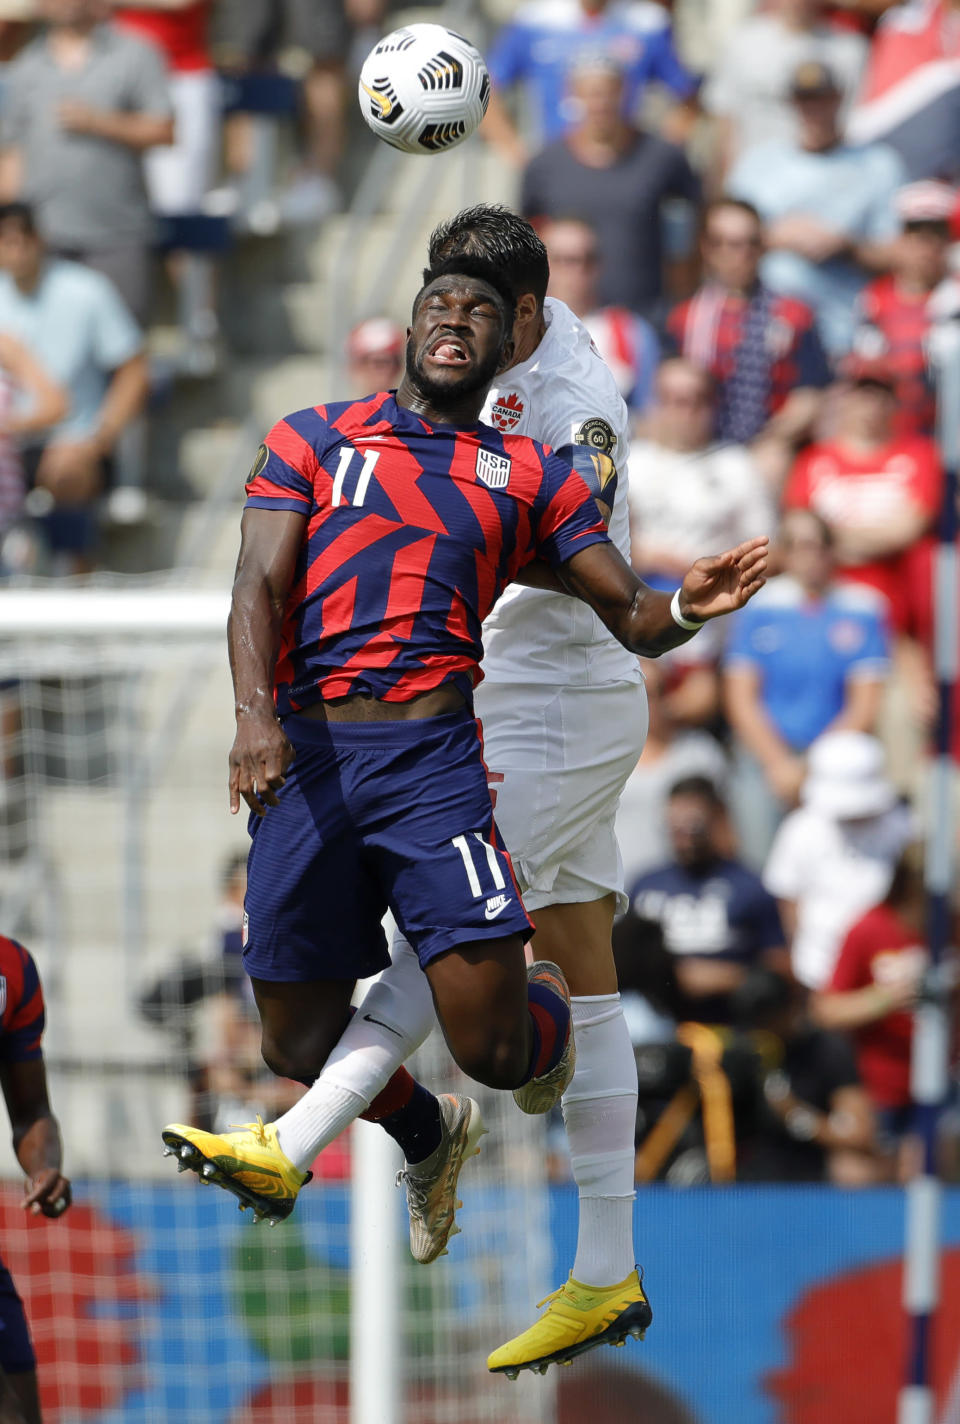 U.S. forward Daryl Dike (11) and Canada defender Steven Vitoria go up for the ball during the first half of a CONCACAF Gold Cup soccer match in Kansas City, Kan., Sunday, July 18, 2021. (AP Photo/Colin E. Braley)